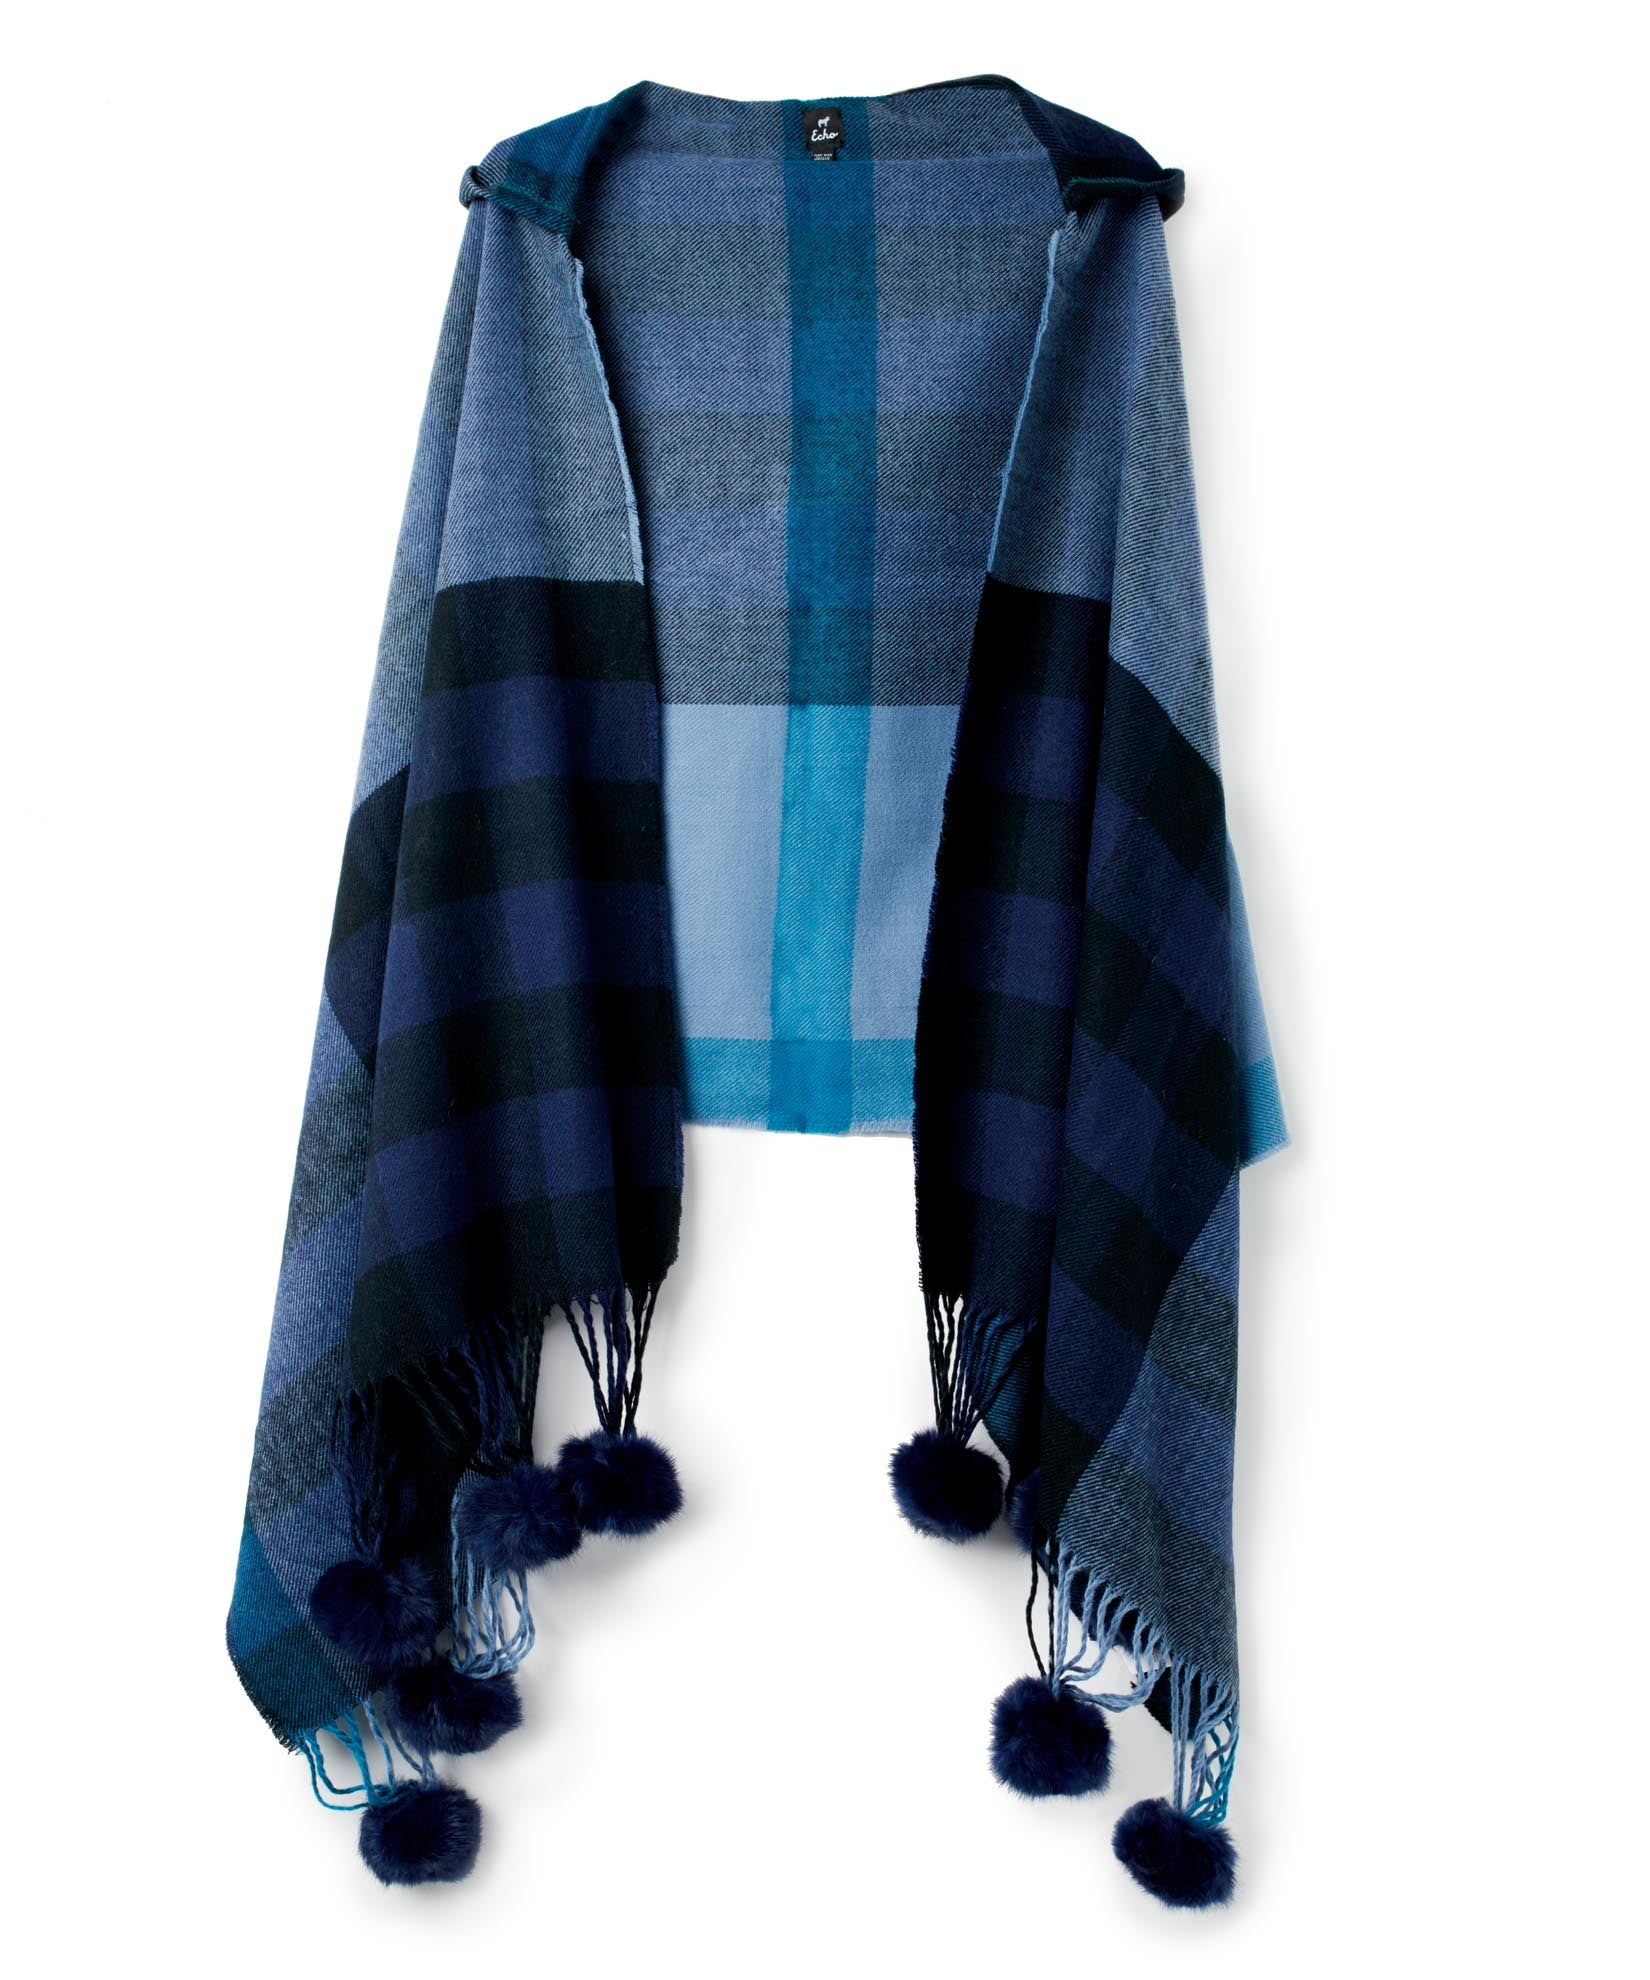 Maritime Navy - Hooded Plaid Wrap With Fur